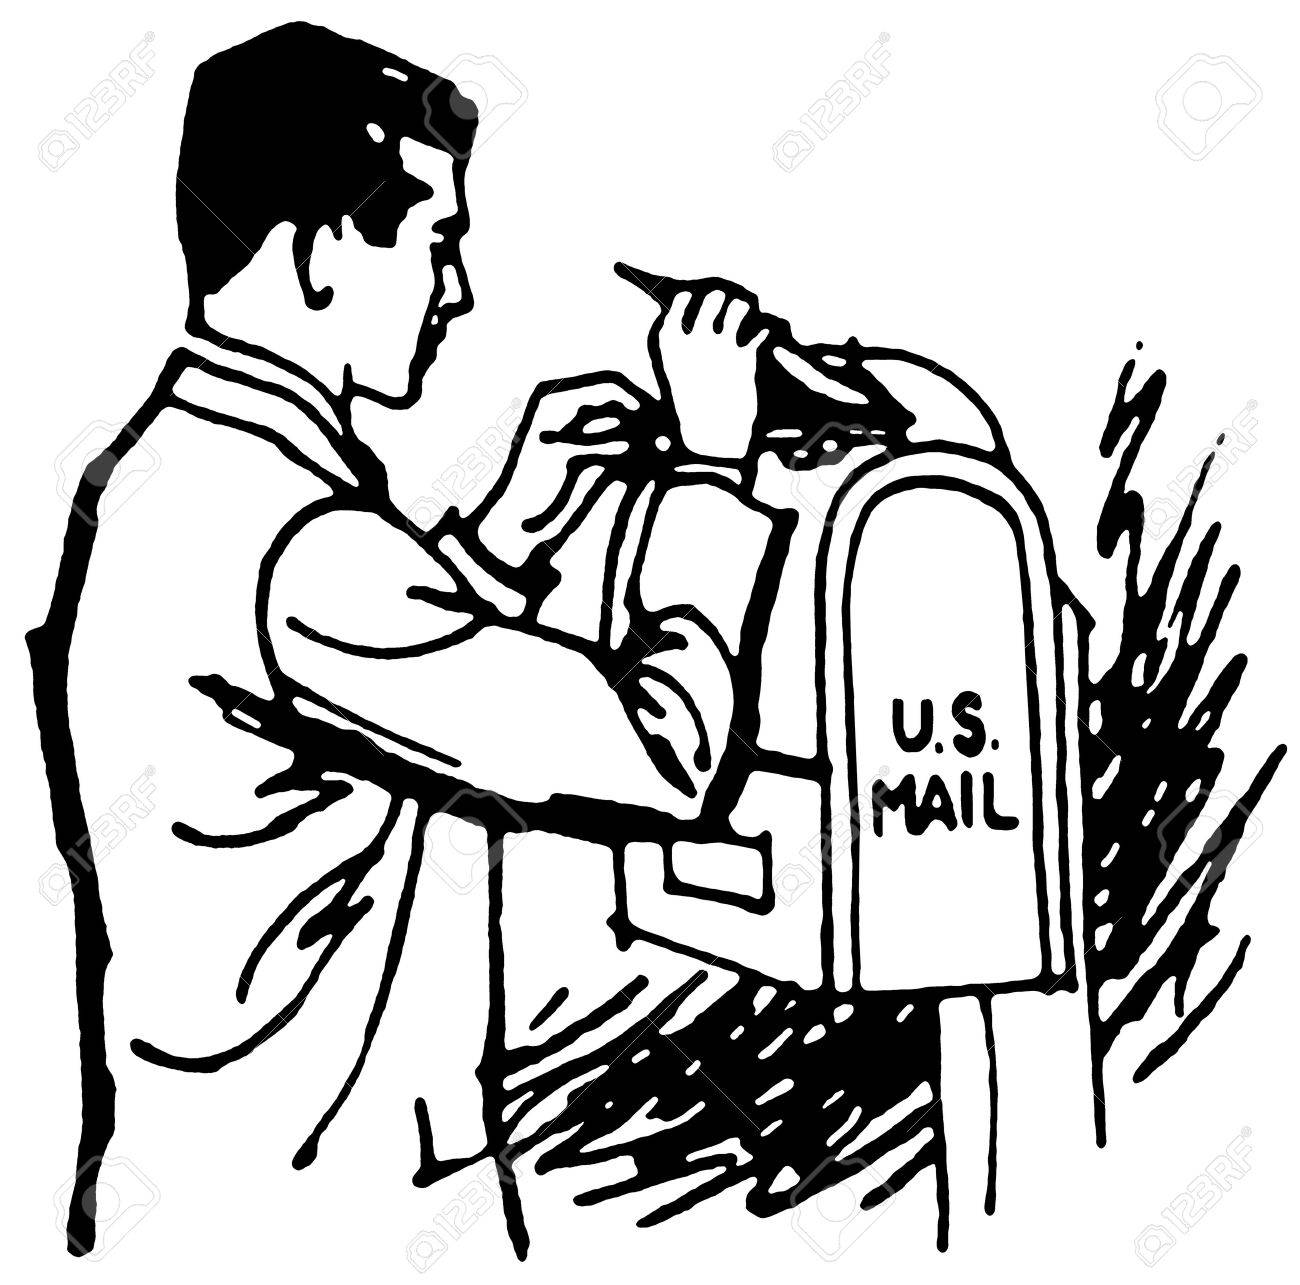 A black an white version of a businessman delivering his mail Stock Photo - 14913199